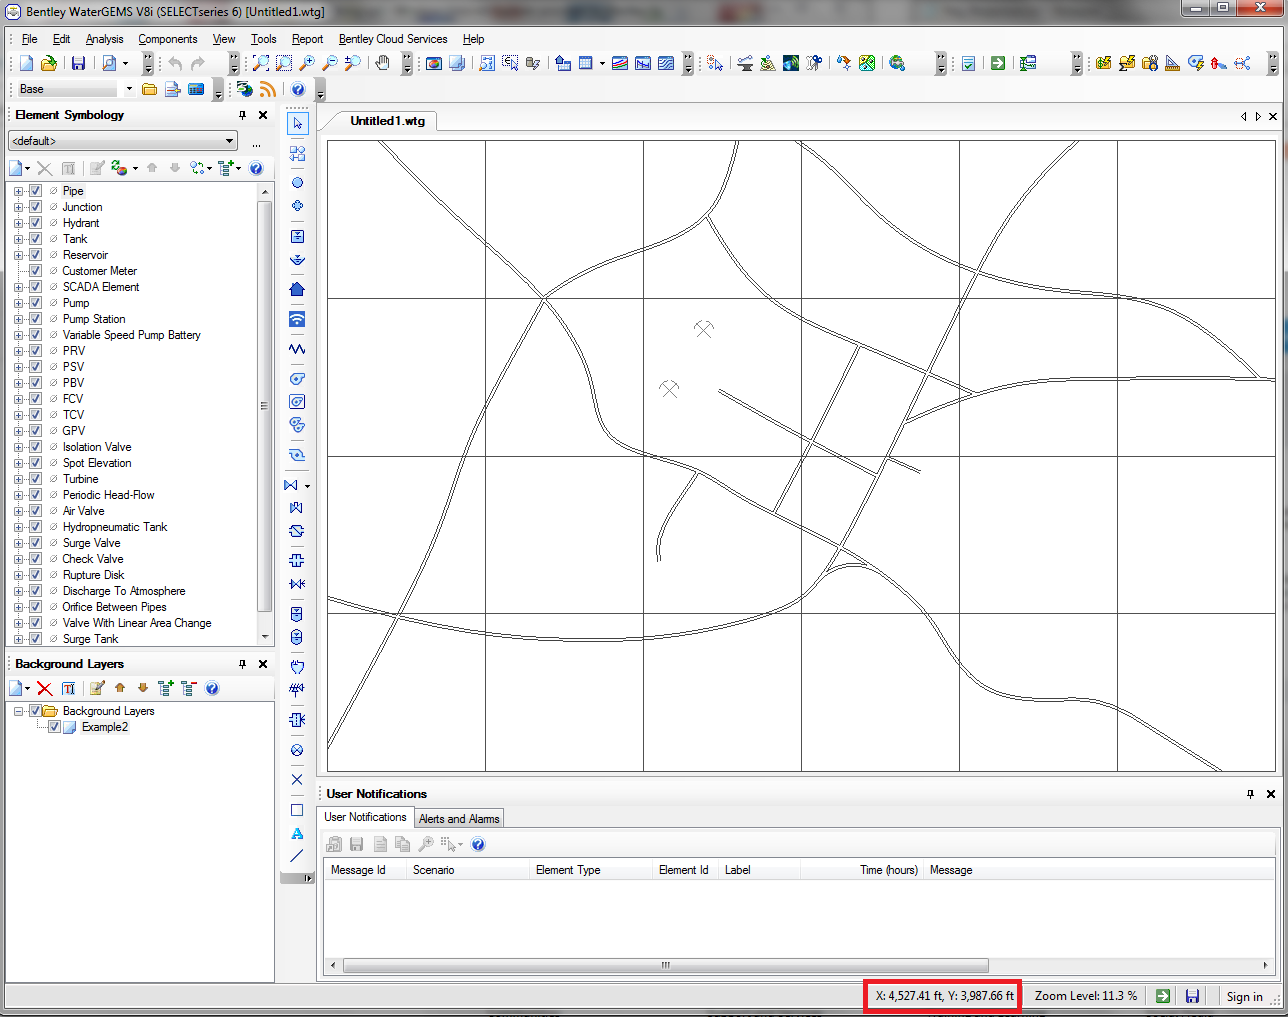 When importing a DXF or shapefile as a background, it does not show